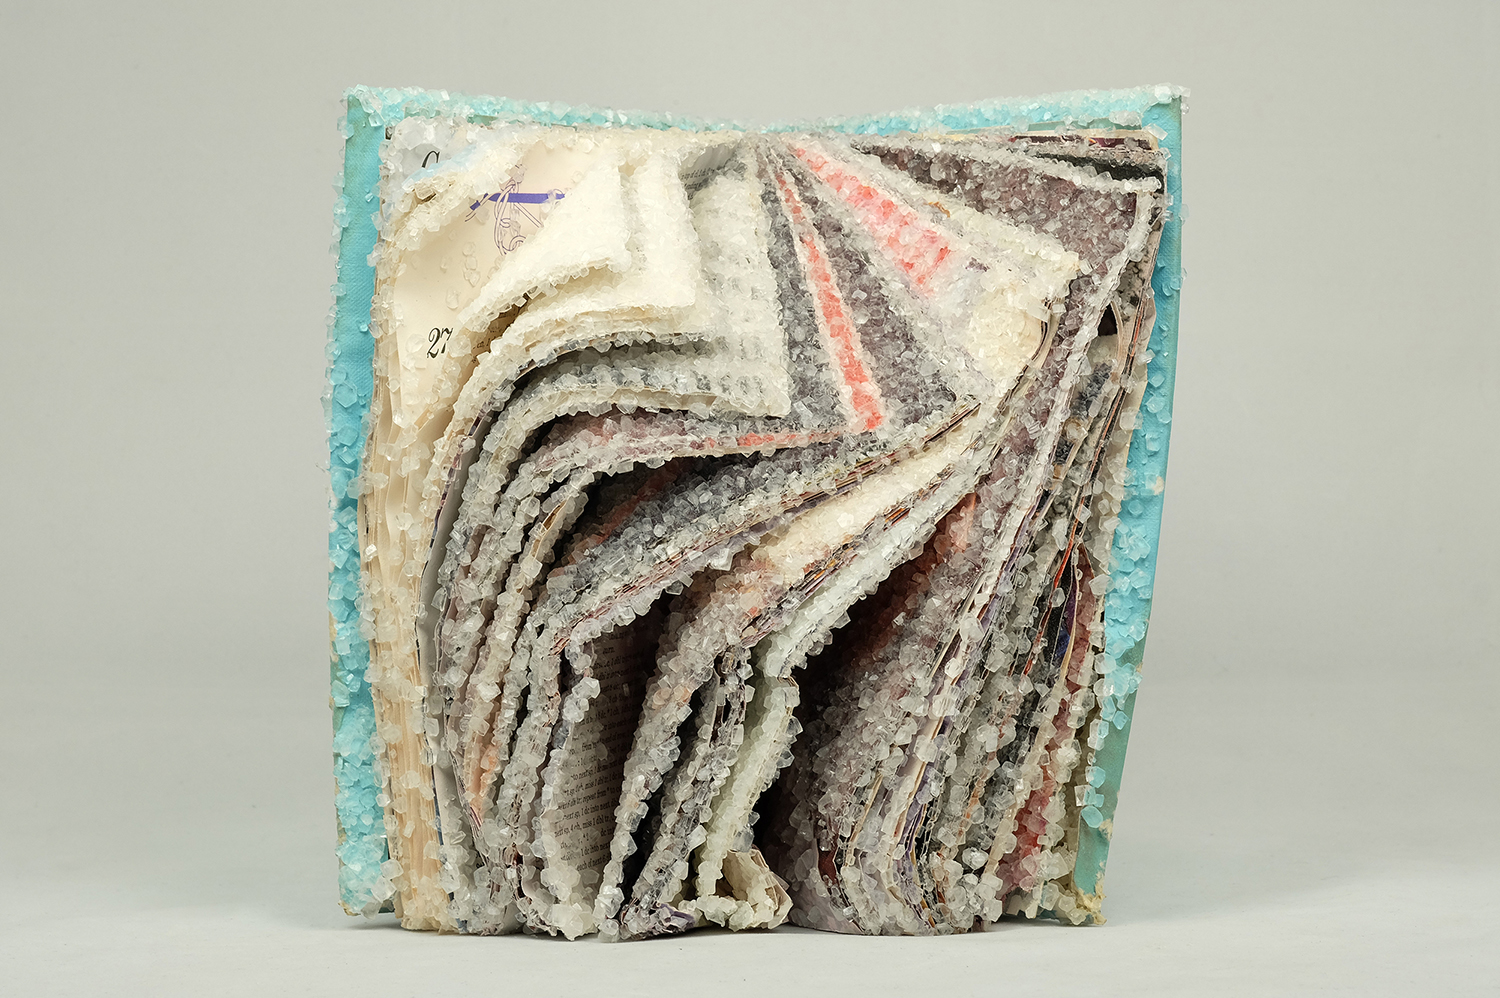 Artist Alexis Arnold Creates Crystalized Book Sculptures Frozen in Time